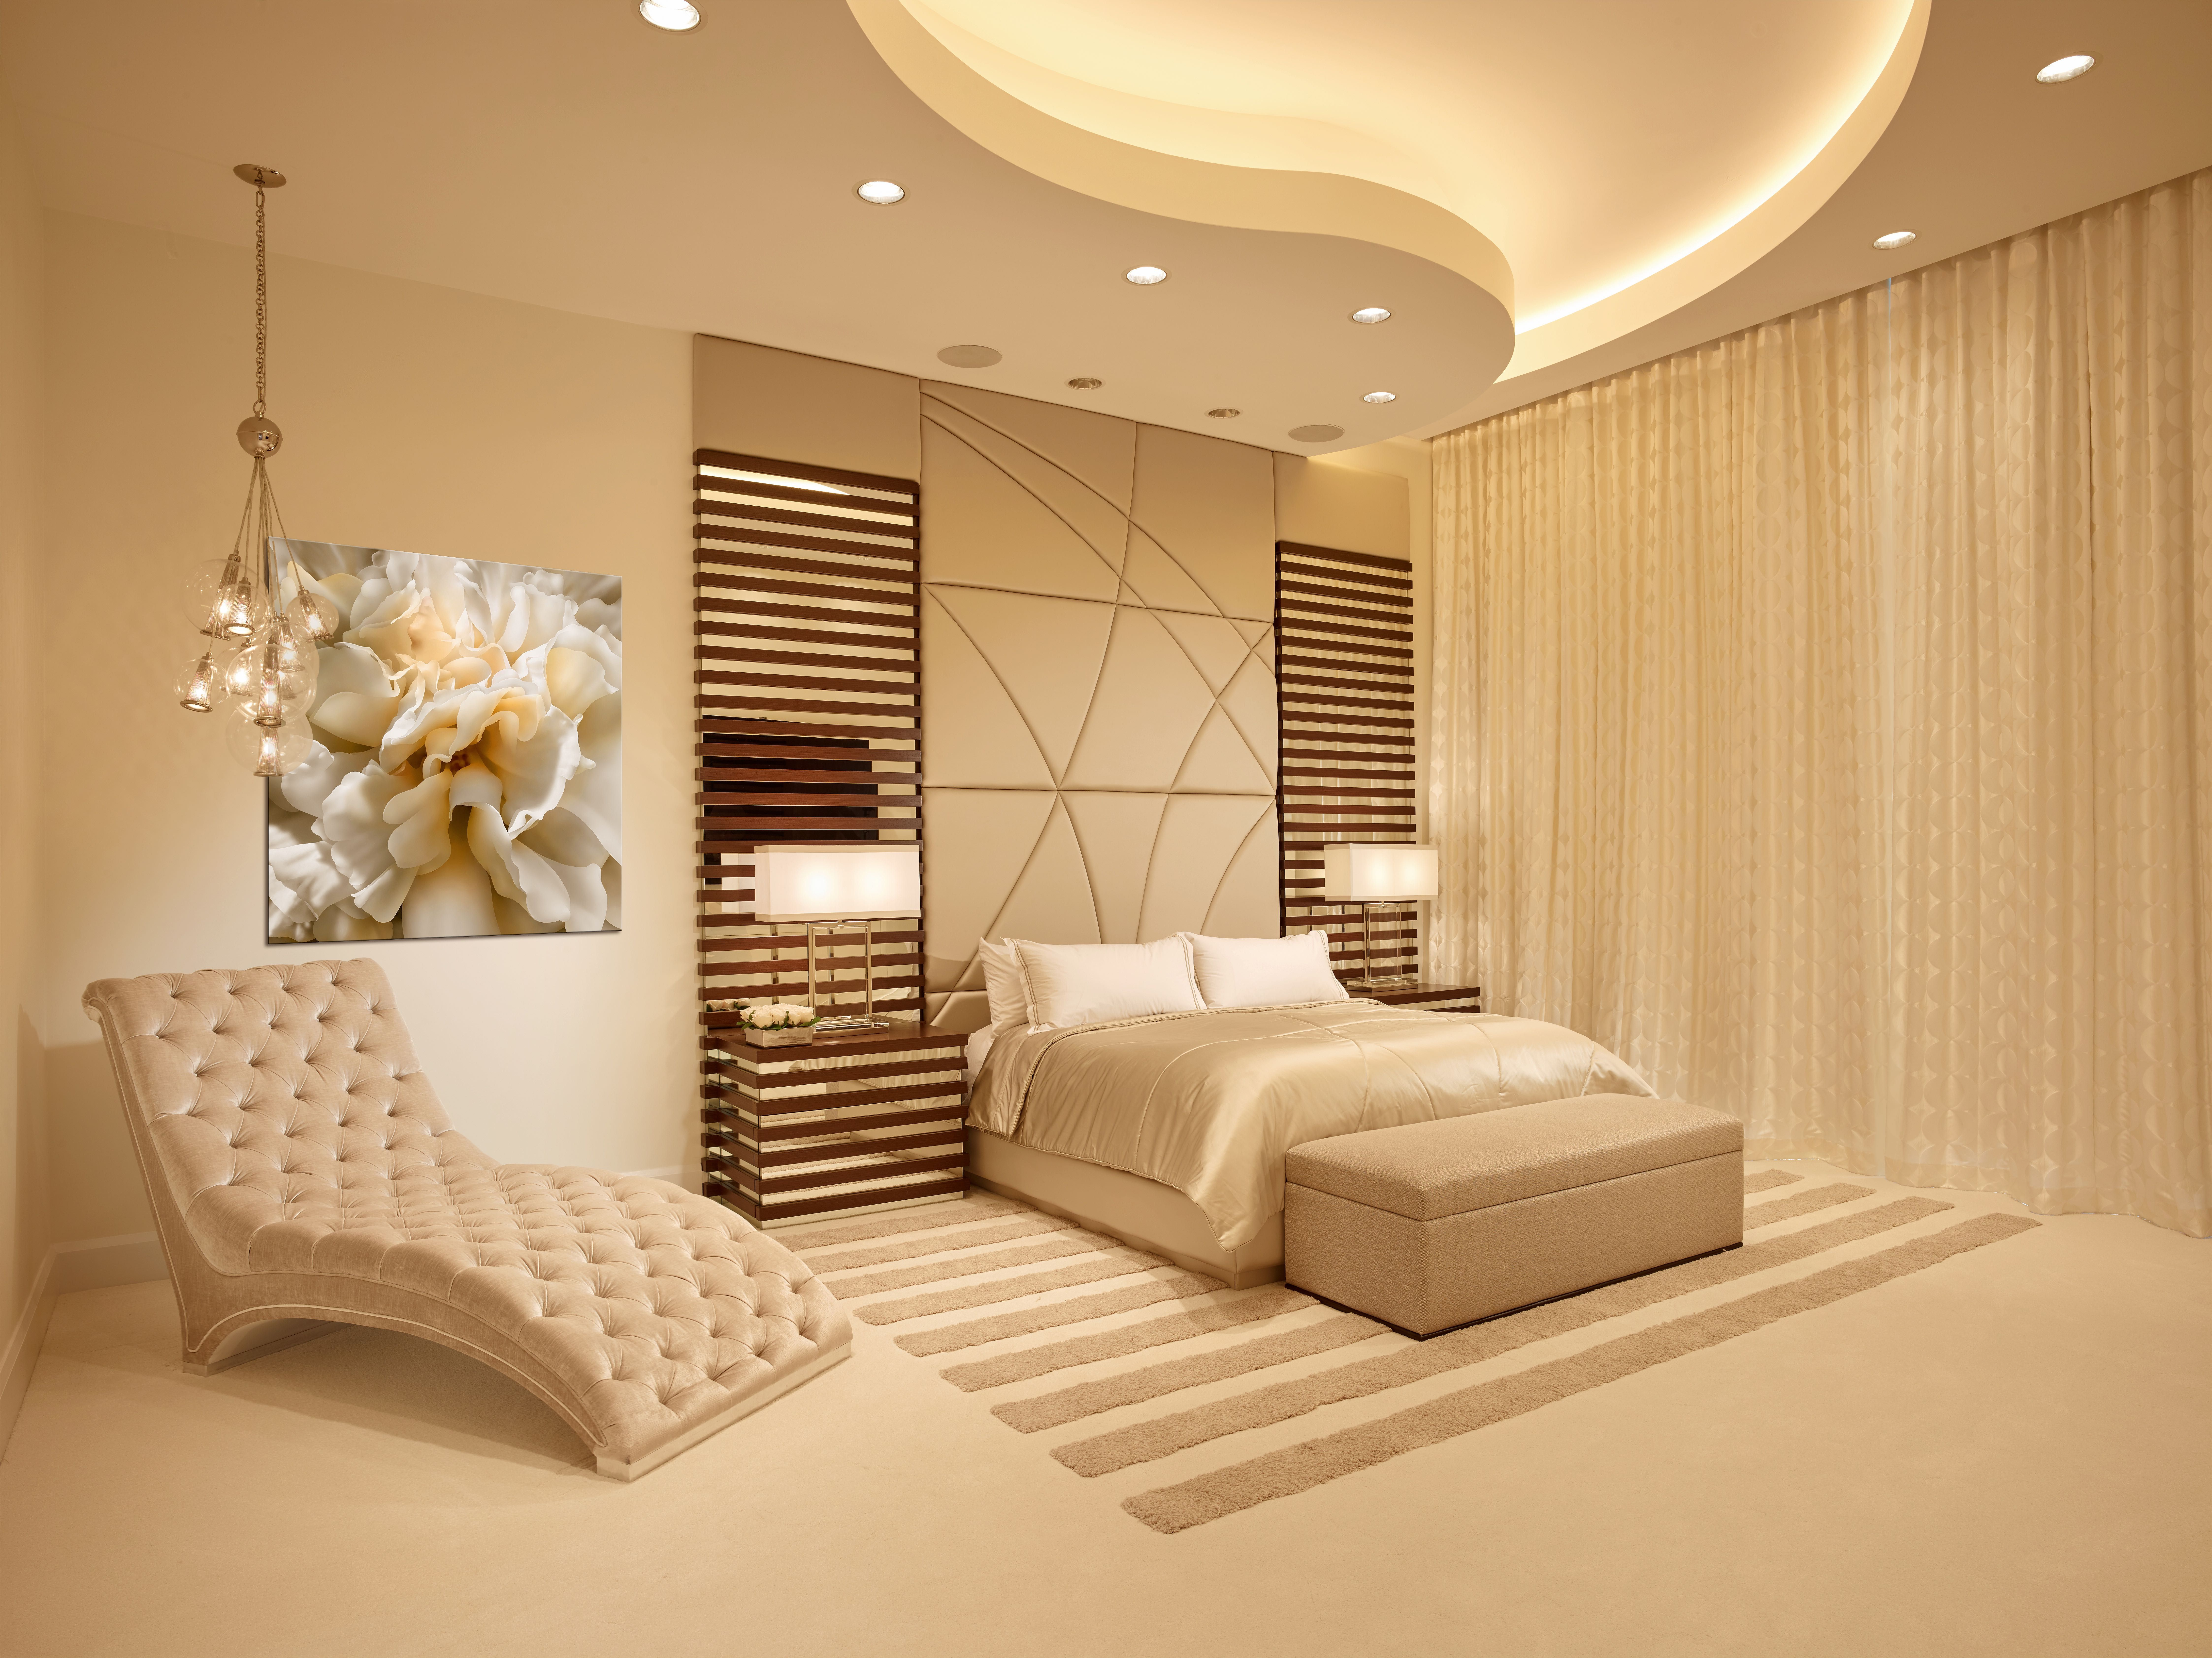 luxury interior design west palm beach with images on interior designer paint choices id=54754